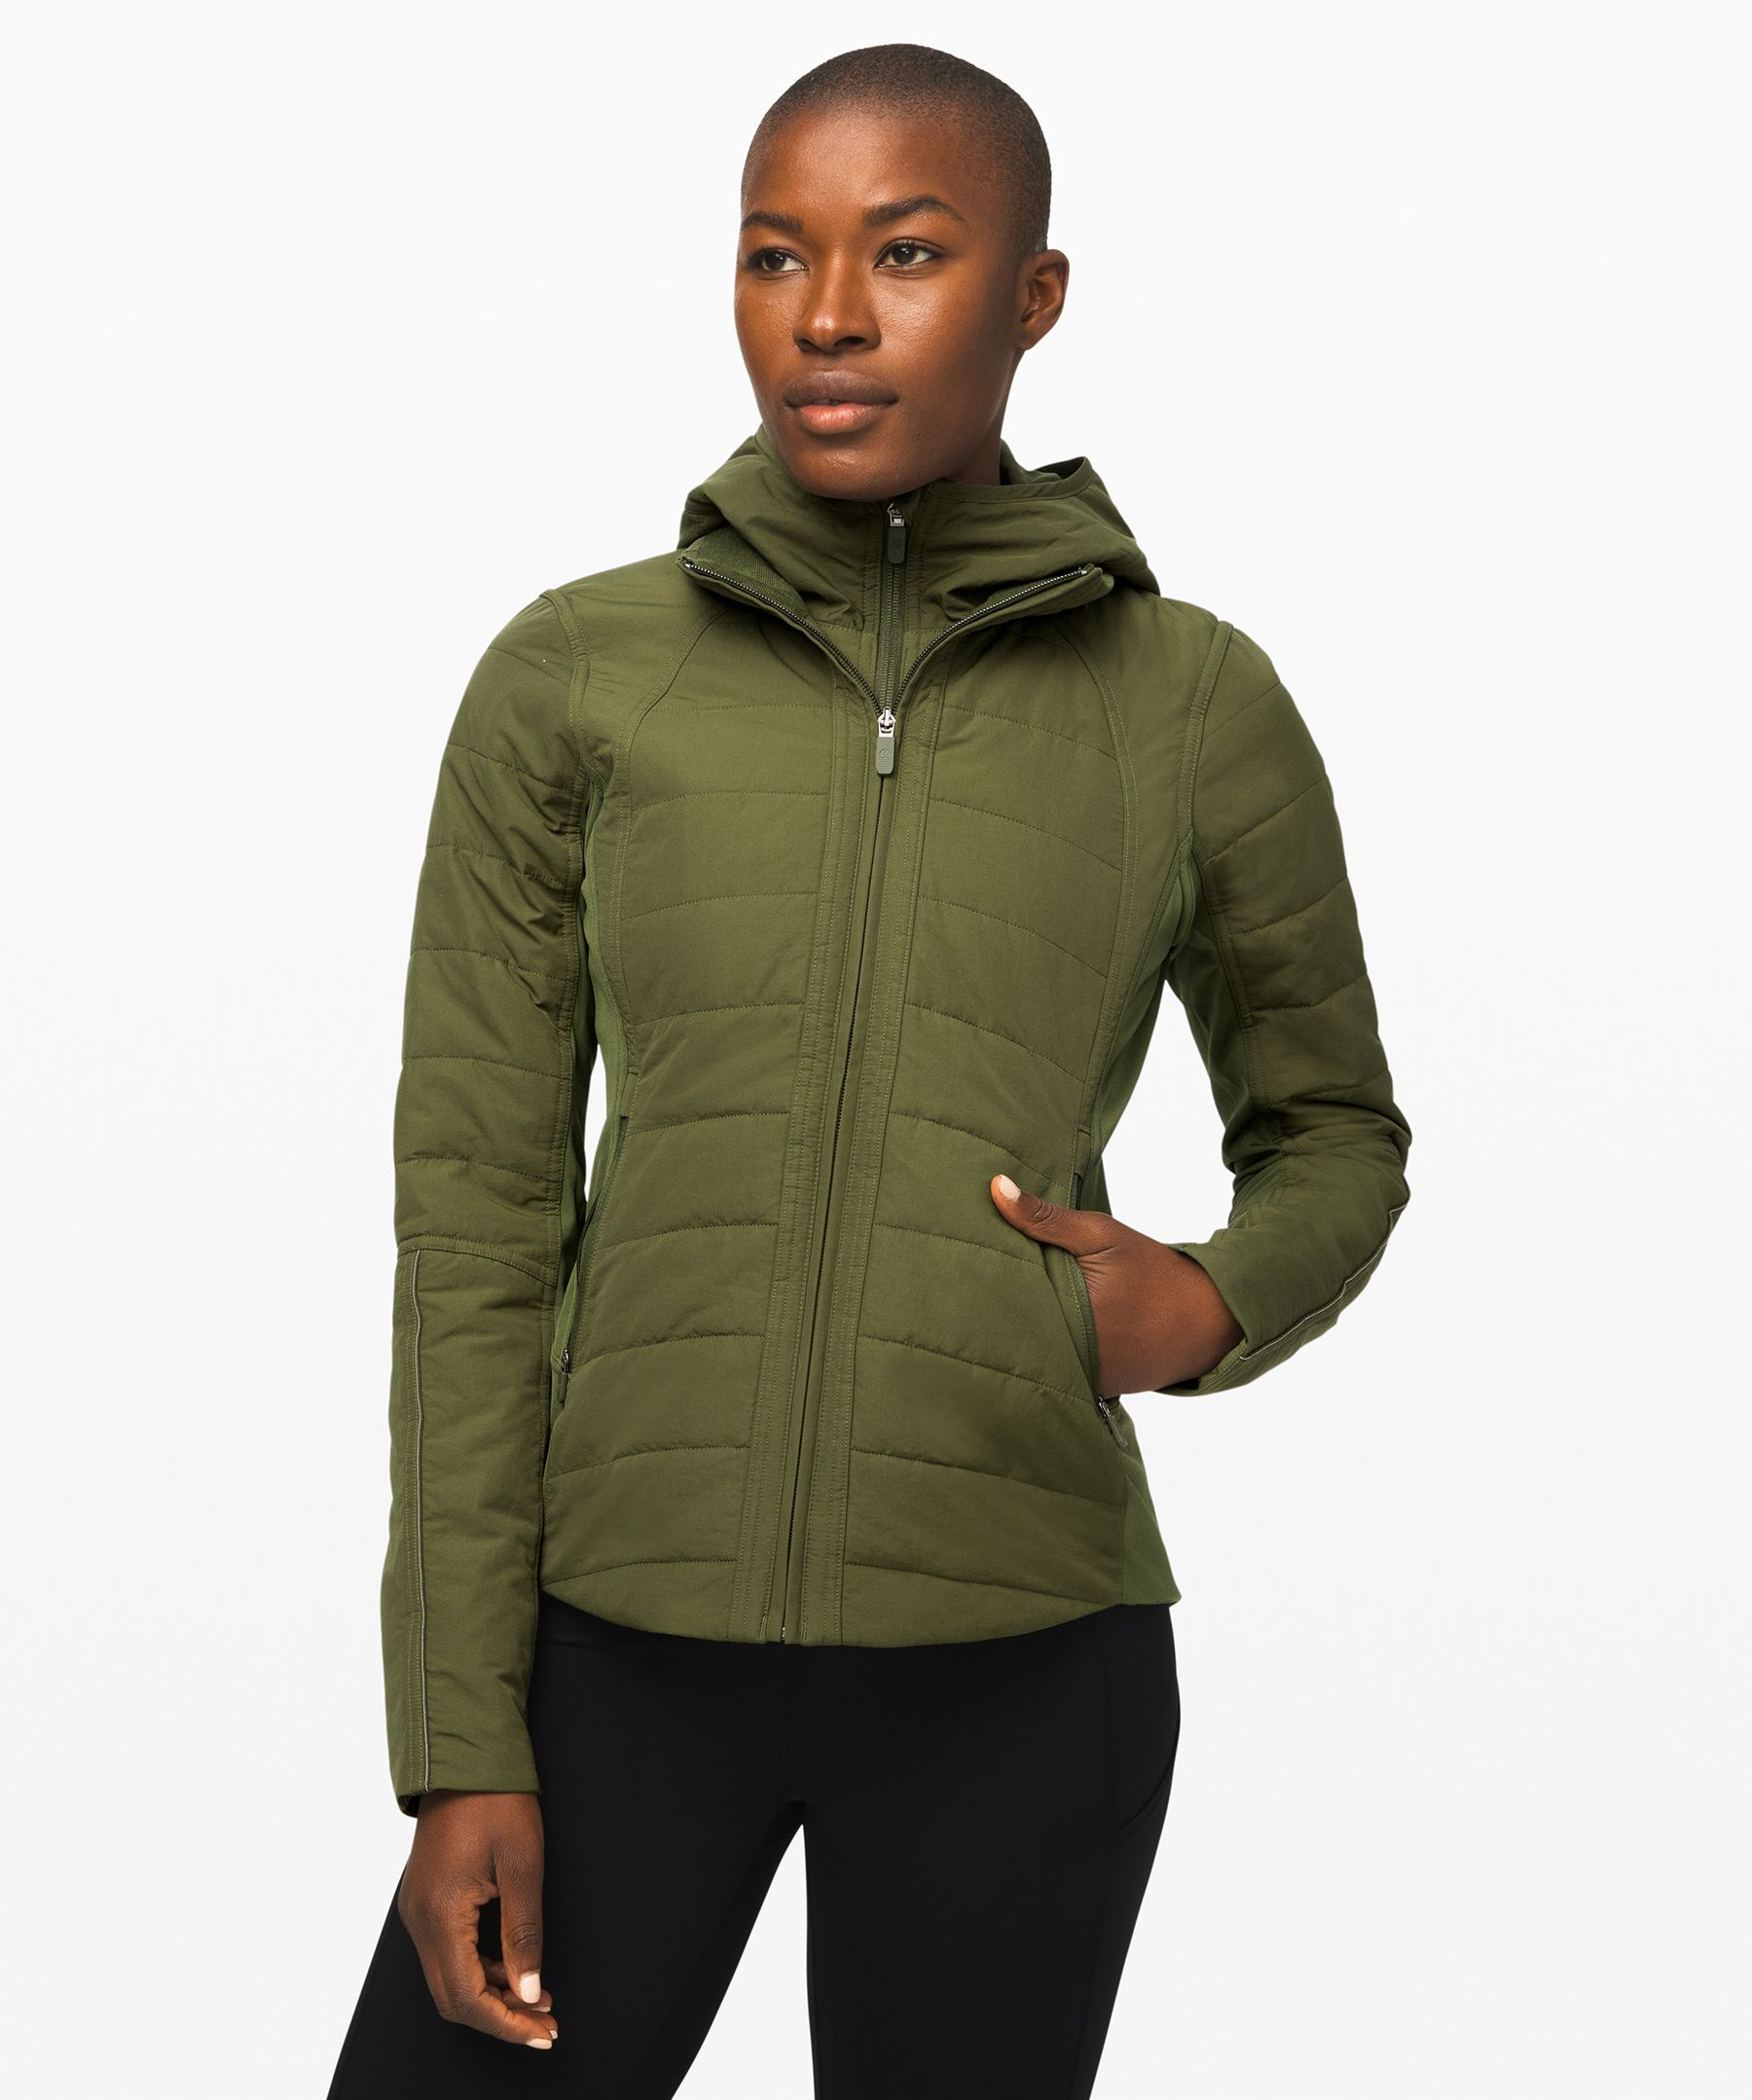 Lululemon Another Mile Jacket In Landscape Green